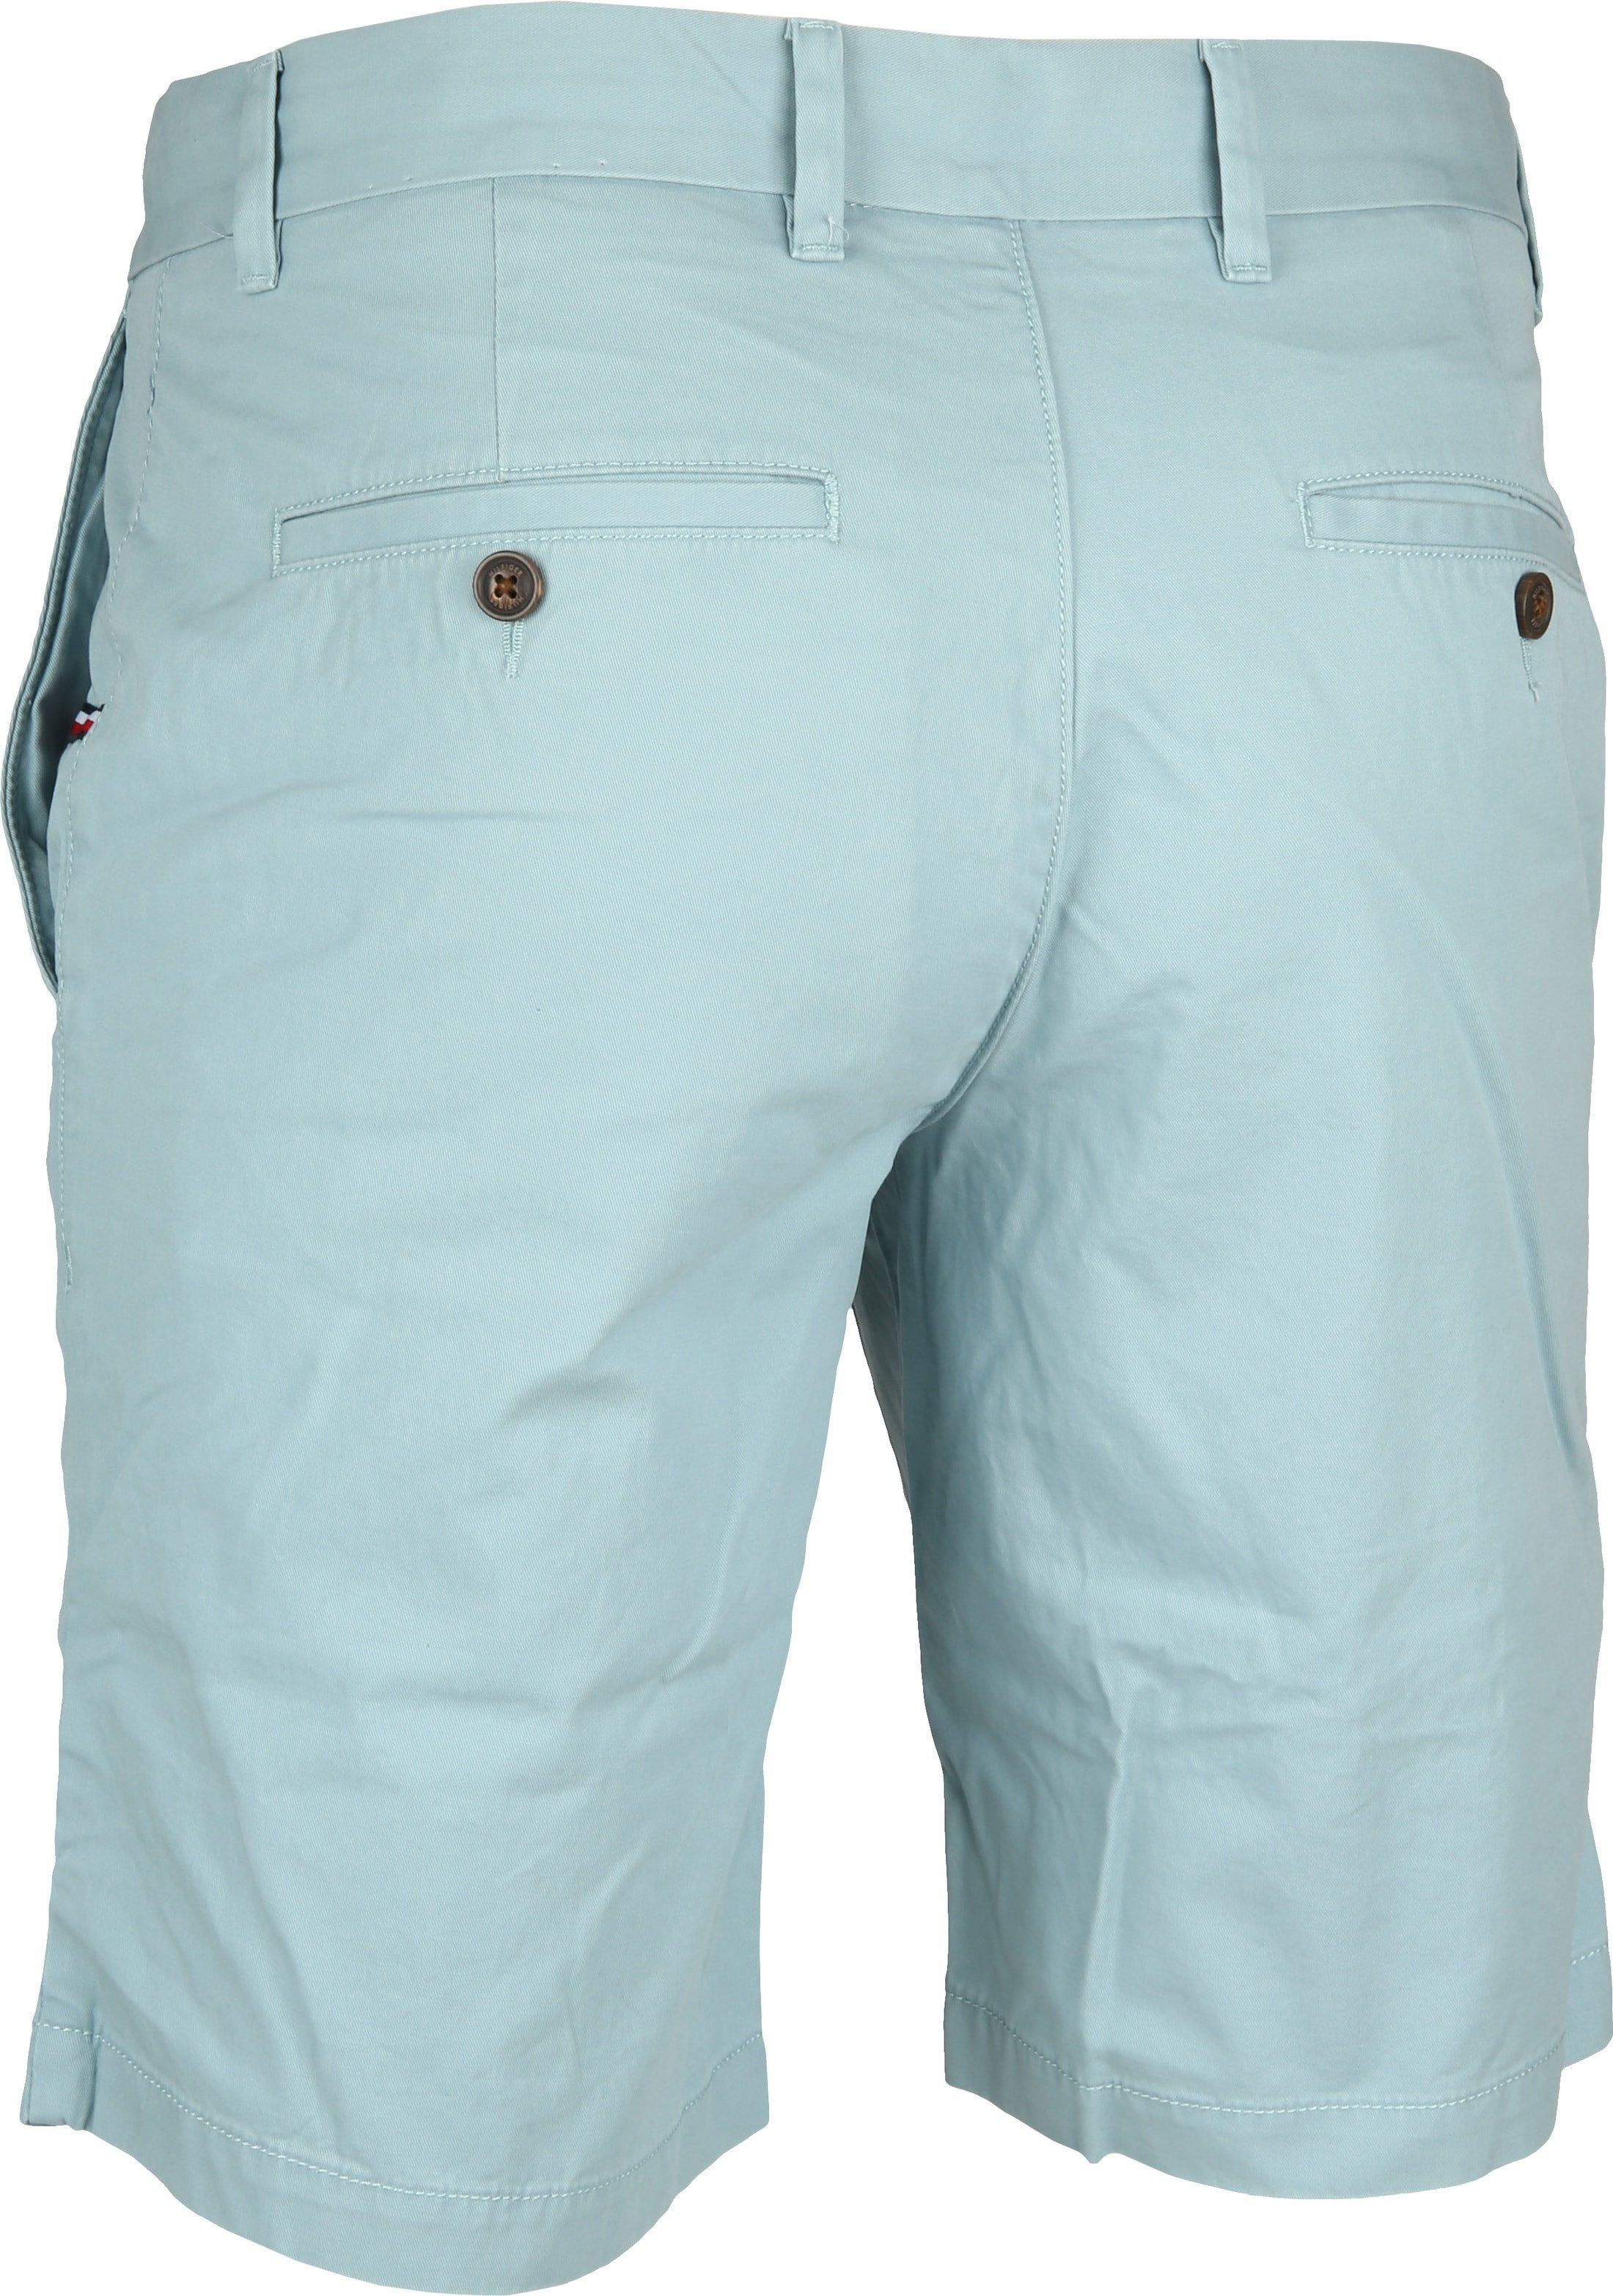 Tommy Hilfiger Short Brooklyn Stone Blue foto 2